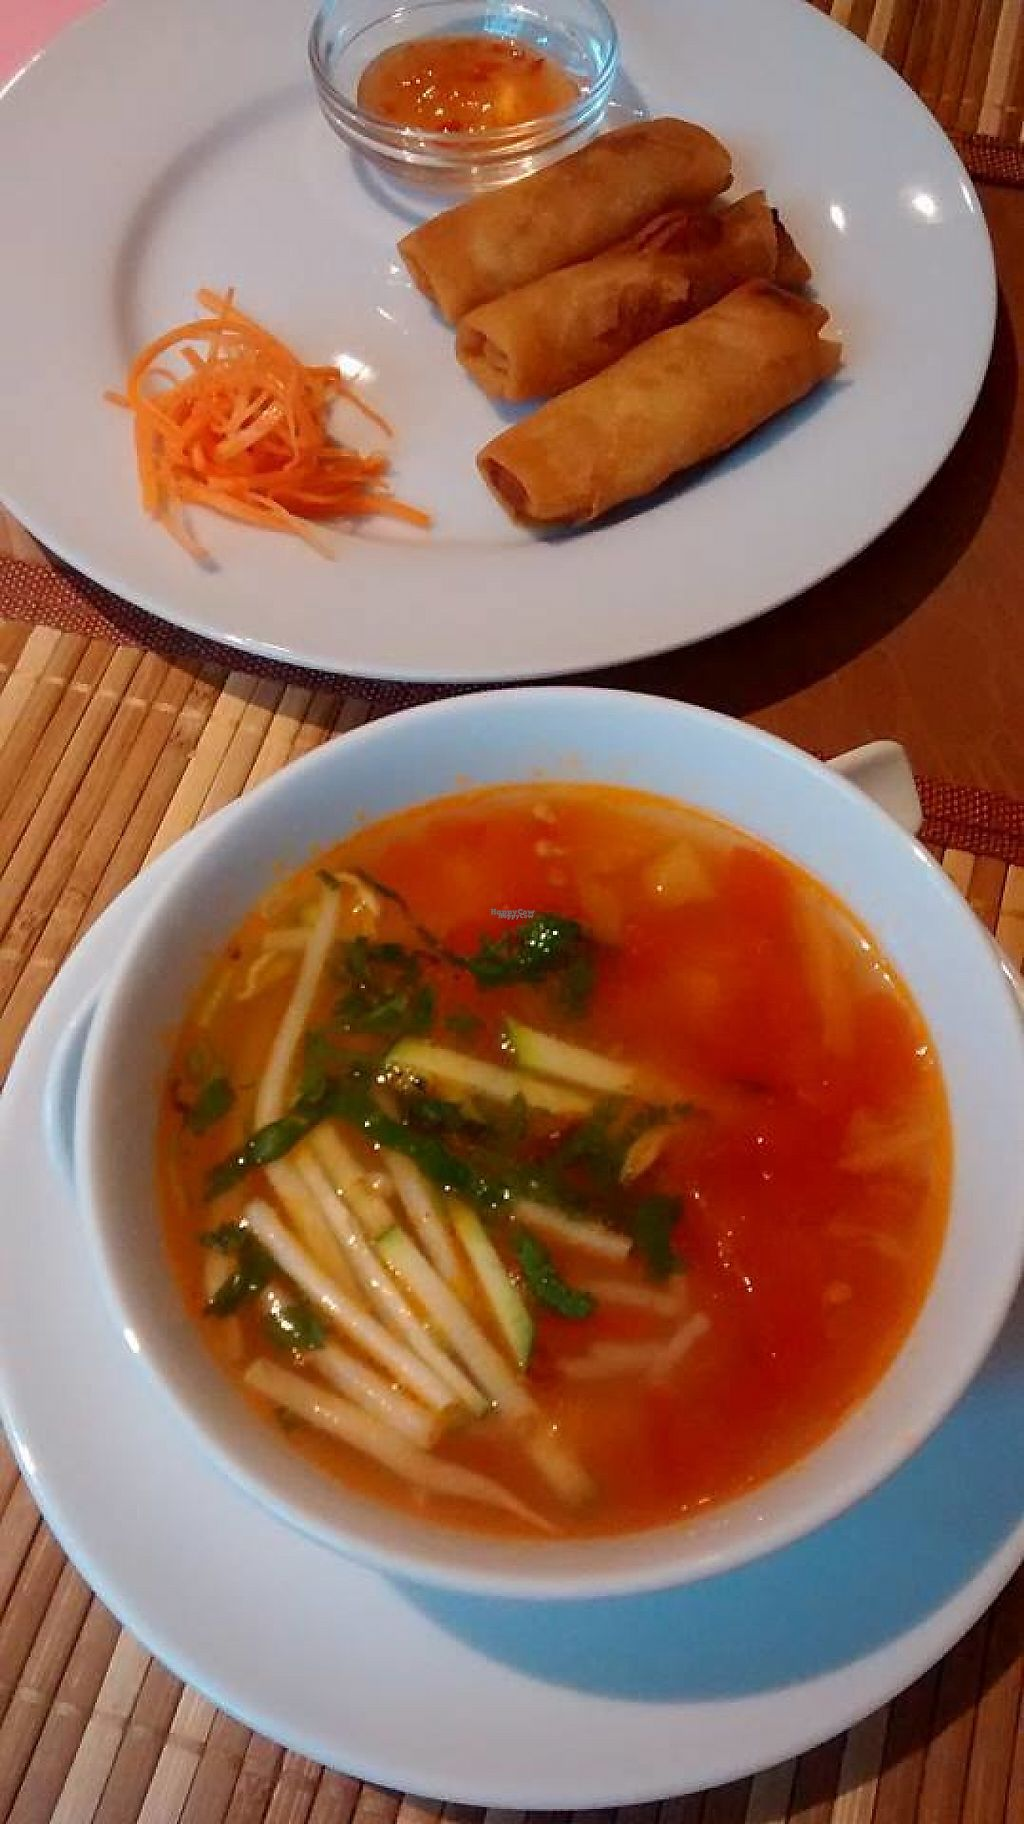 """Photo of Loving Hut  by <a href=""""/members/profile/BlisterBlue"""">BlisterBlue</a> <br/>Soup of the day and spring rolls as a first plate (included on the menu) <br/> January 10, 2017  - <a href='/contact/abuse/image/22089/210320'>Report</a>"""